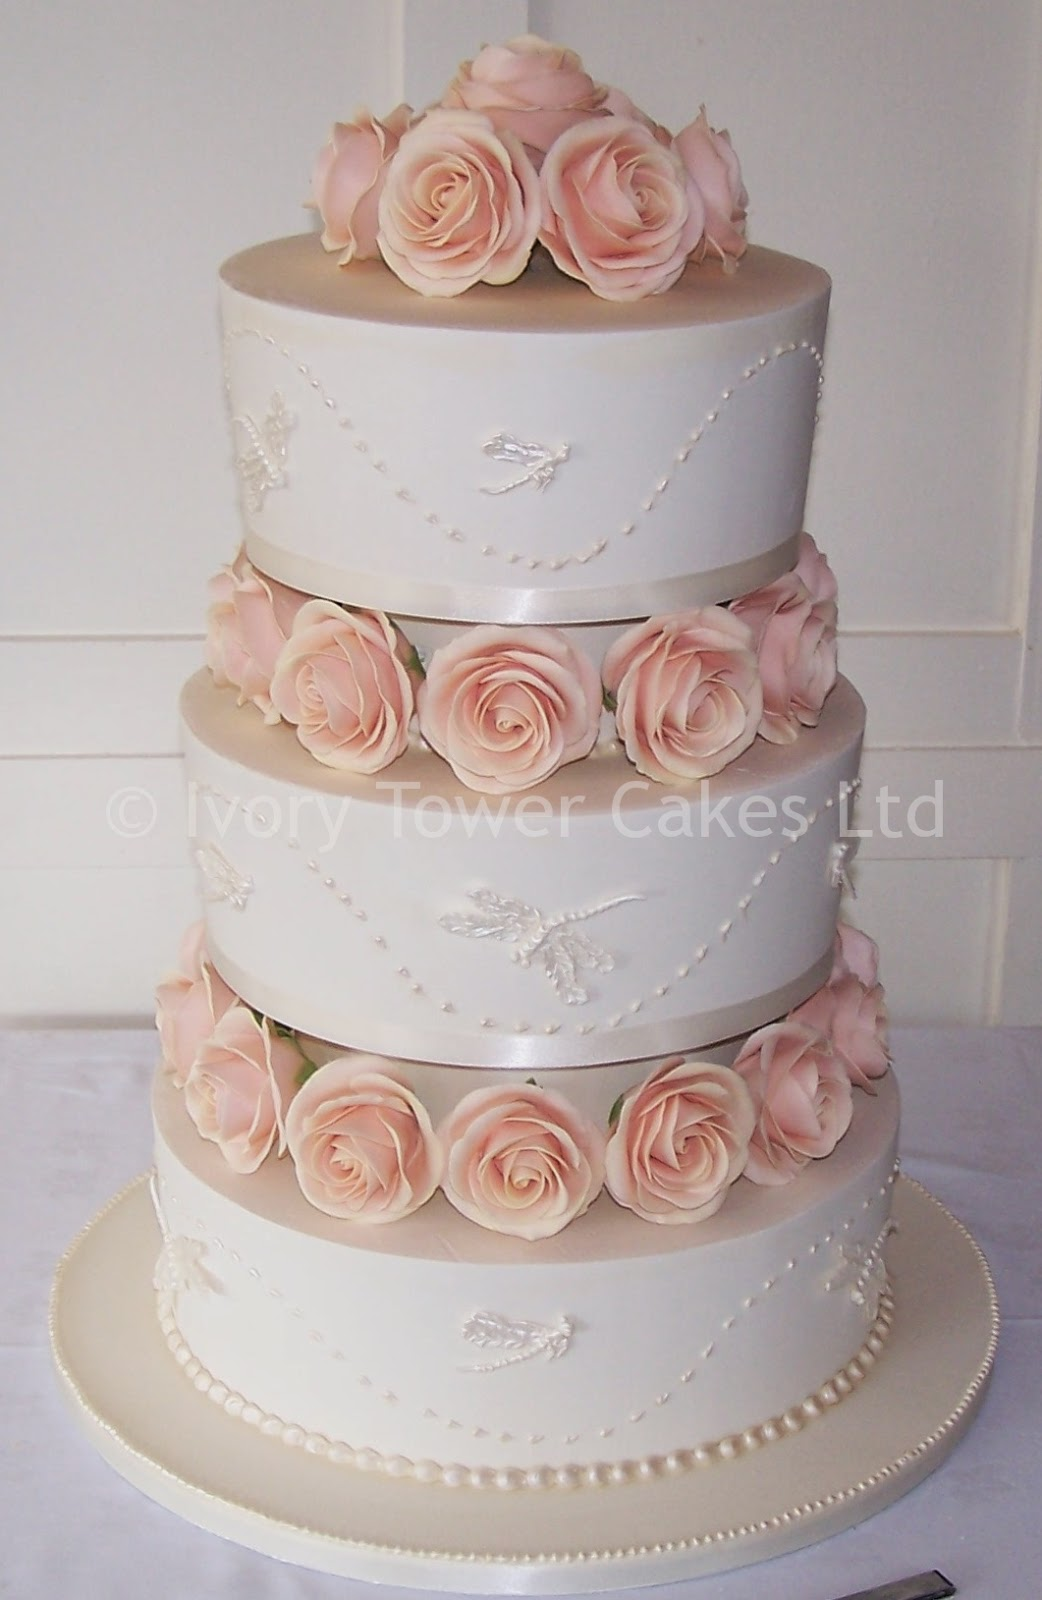 How Much Is A Two Layer Fondant Cake